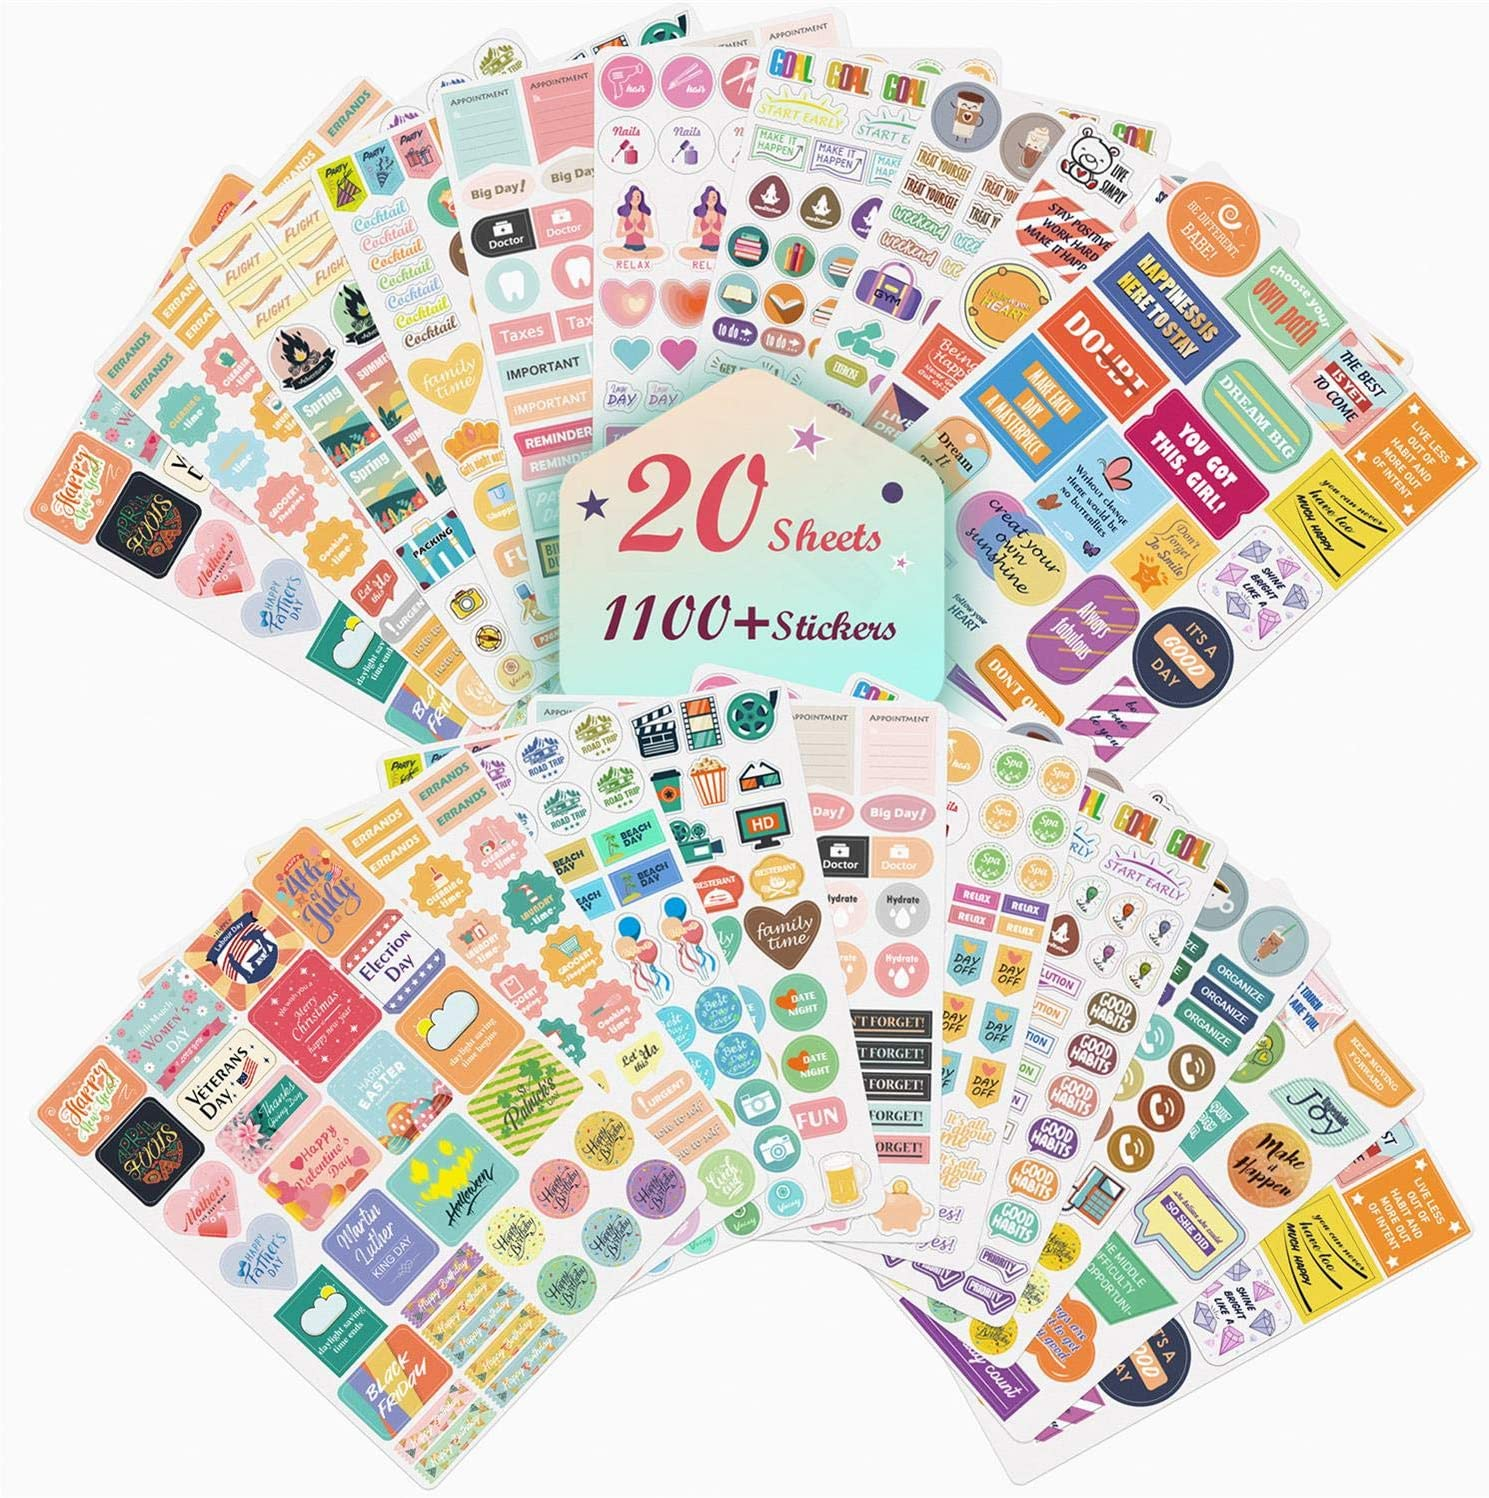 Planner Stickers 20 Sheets, Over 1100 Cute Stickers for Planner, Various Theme Monthly Weekly Daily Planner Sticker Set, Stickers for Planners, Calendar, Bullet Journal, Scrapbook Stickers